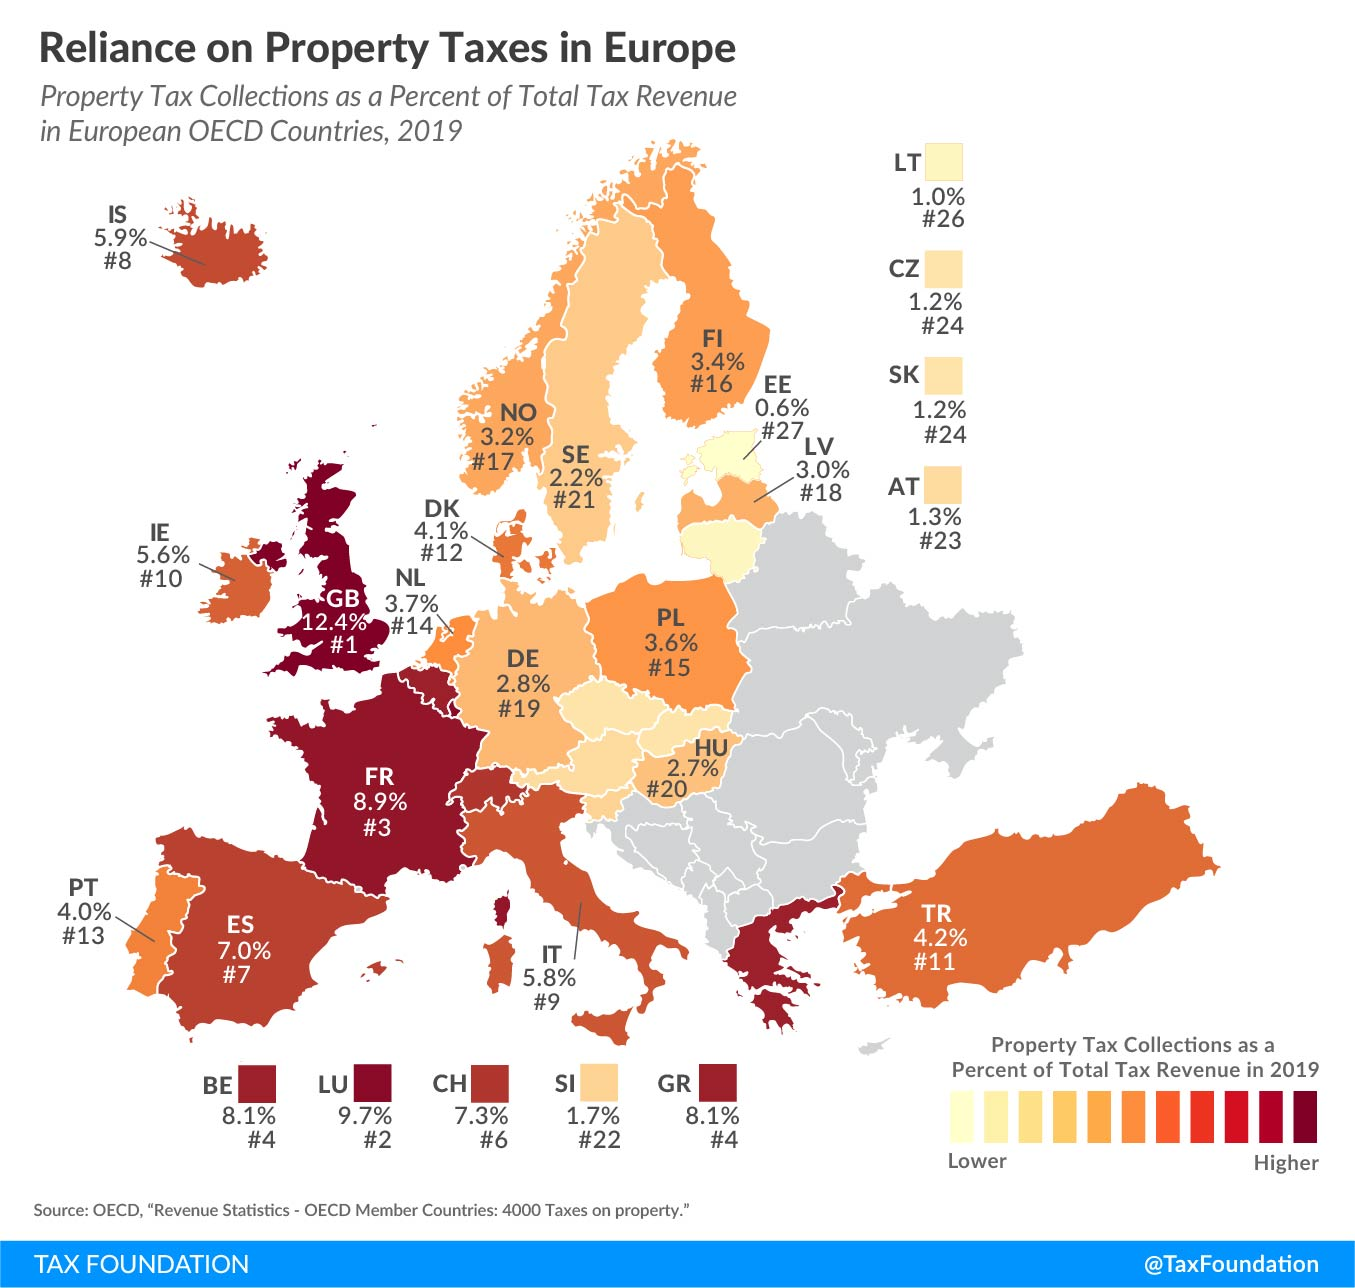 Property taxes in Europe 2021 reliance on property tax revenue in Europe, 2021 property tax rates in Europe